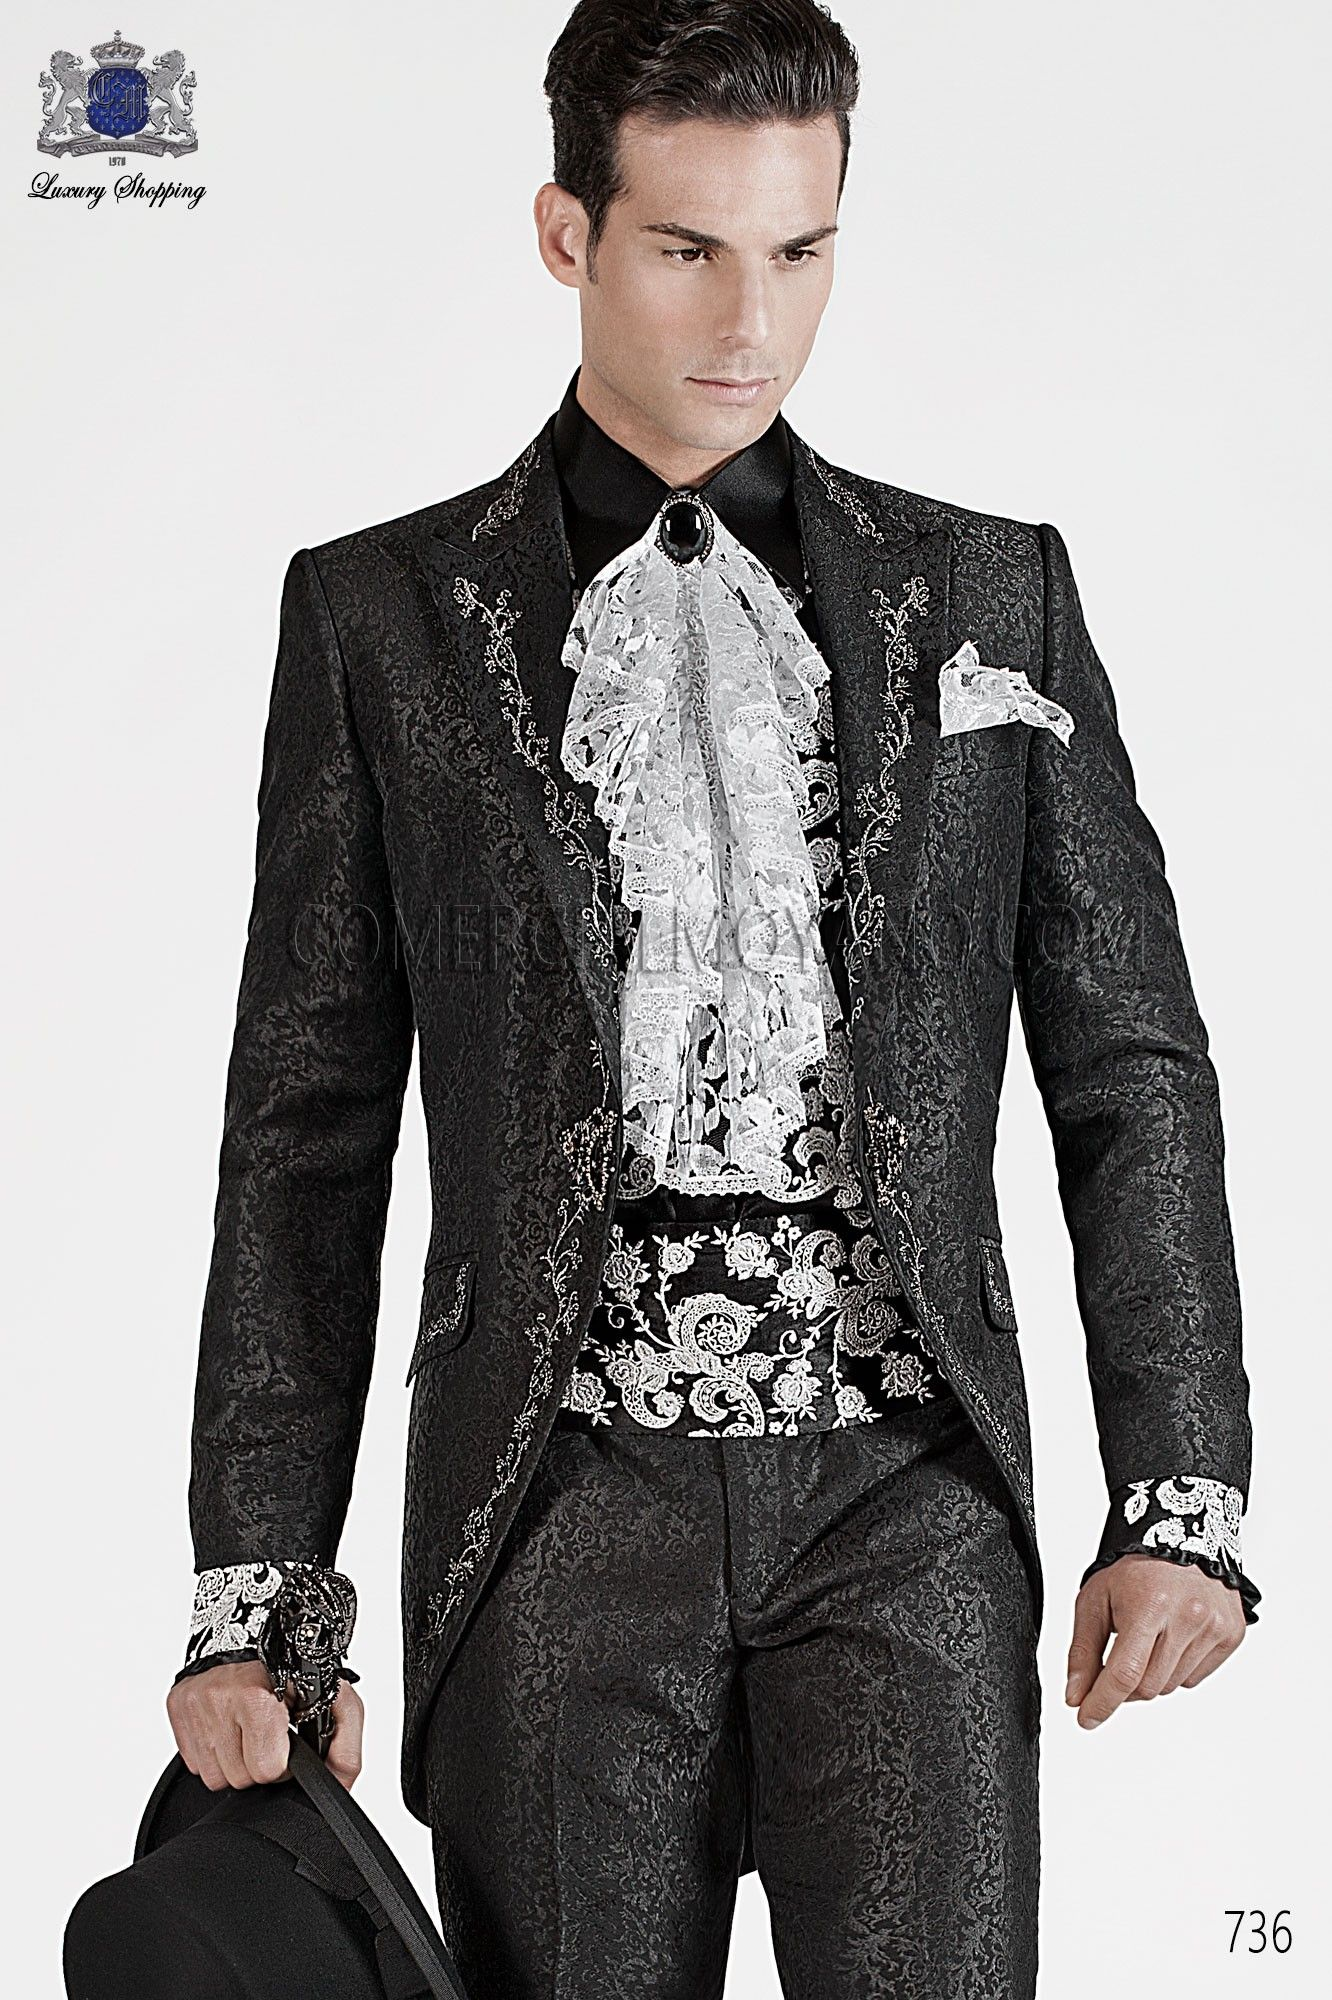 Italian bespoke black brocade short frock coat with silver floral embroidery and peak lapel. Silver embroidery on the front, rear, lapel, collar and pocket flaps, style 736 Ottavio Nuccio Gala, 2015 Baroque collection.